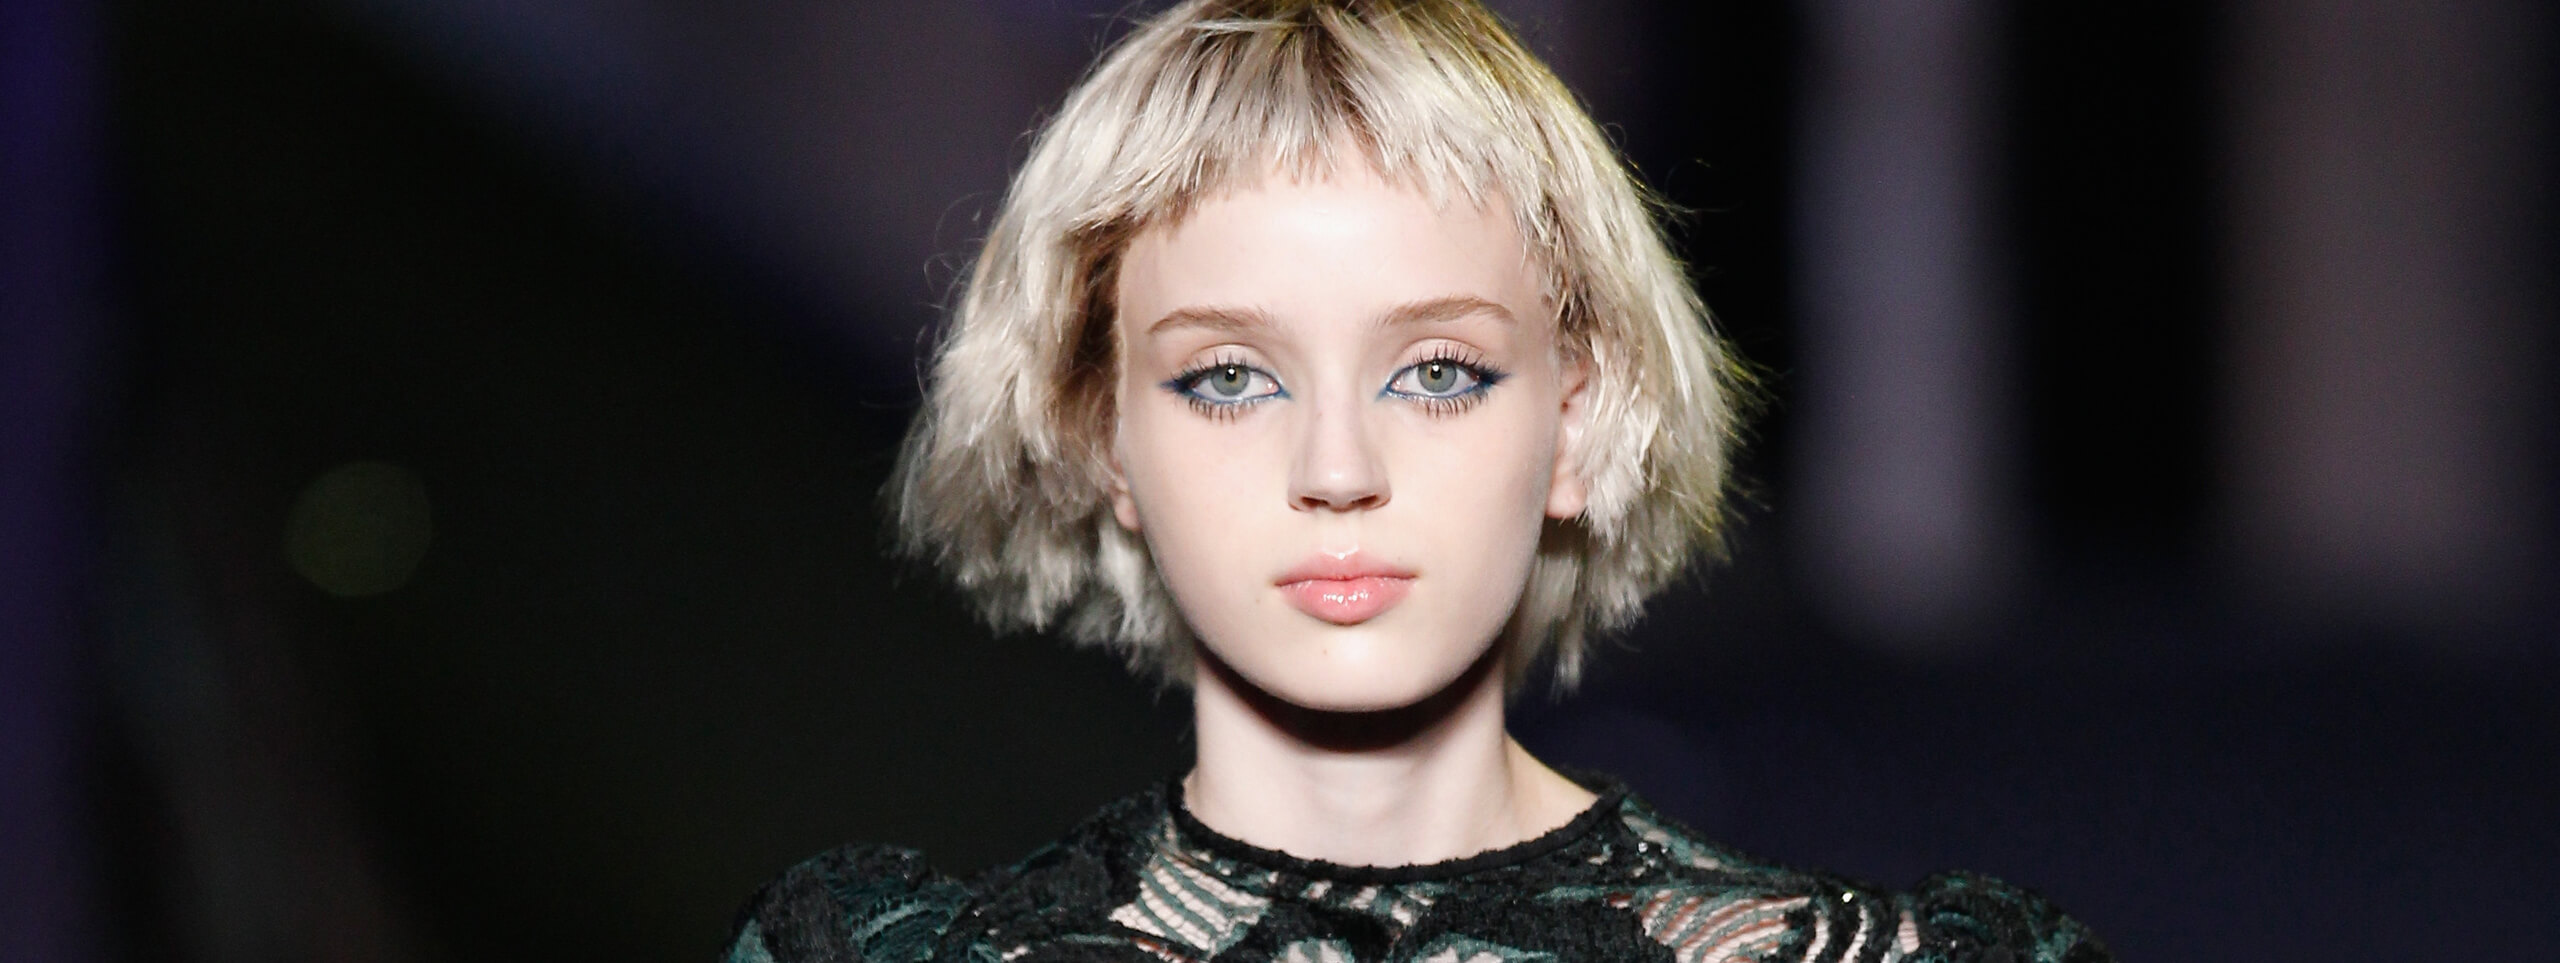 Blonde model with choppy bob hairstyle